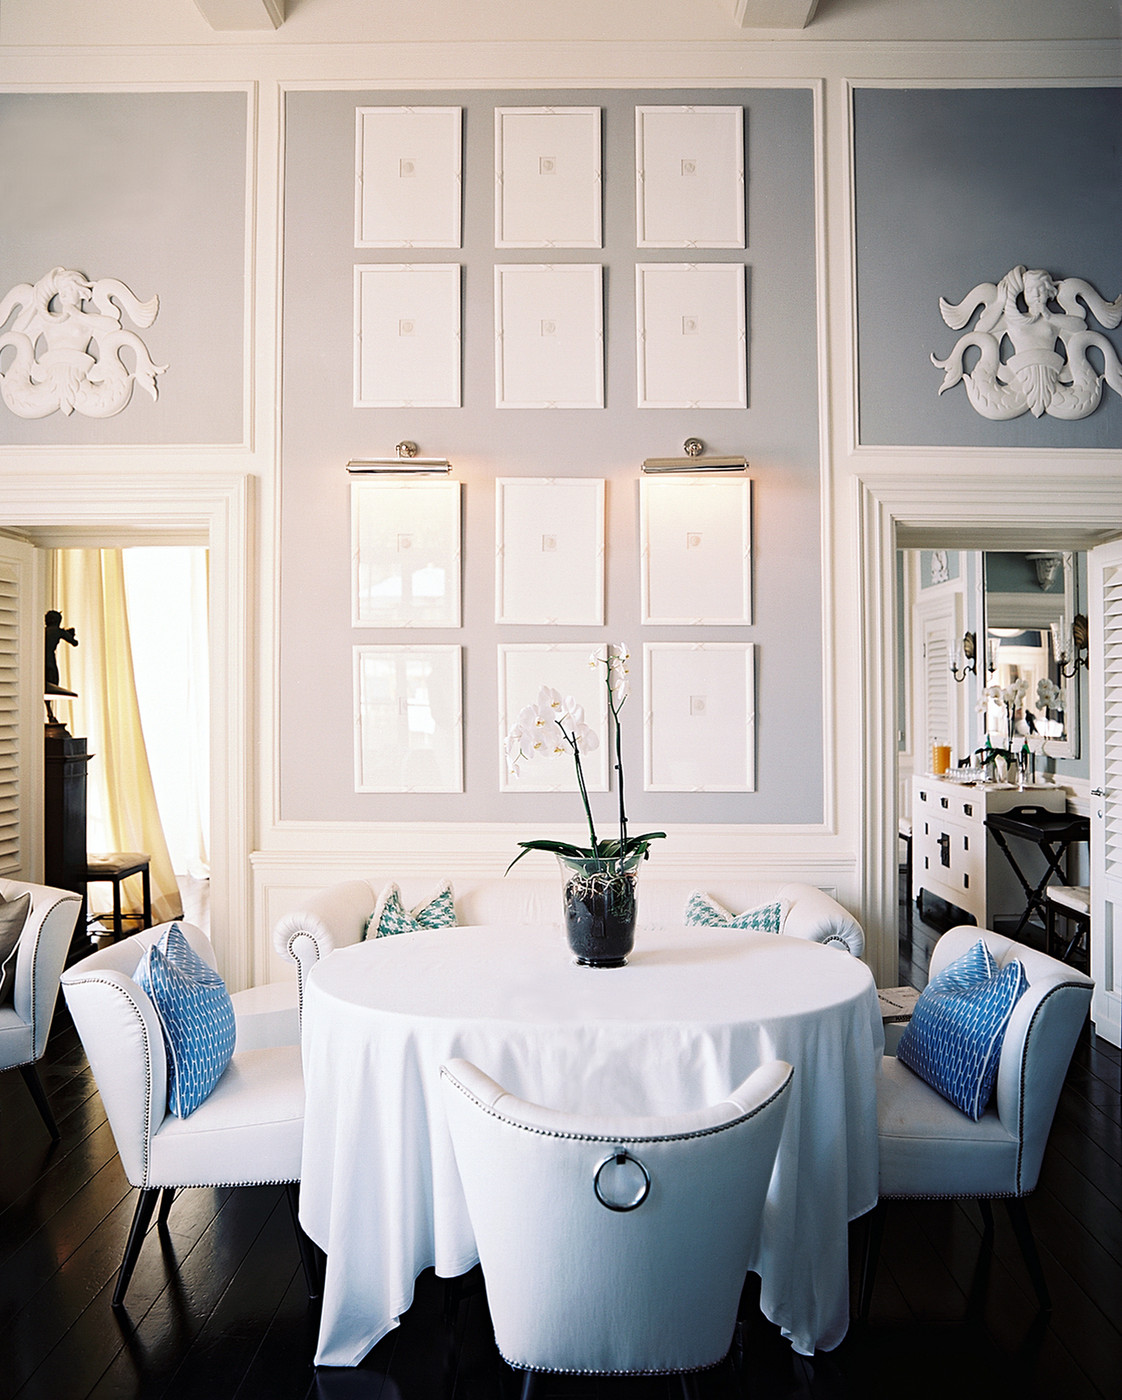 White seating surrounds a white round tablecloth